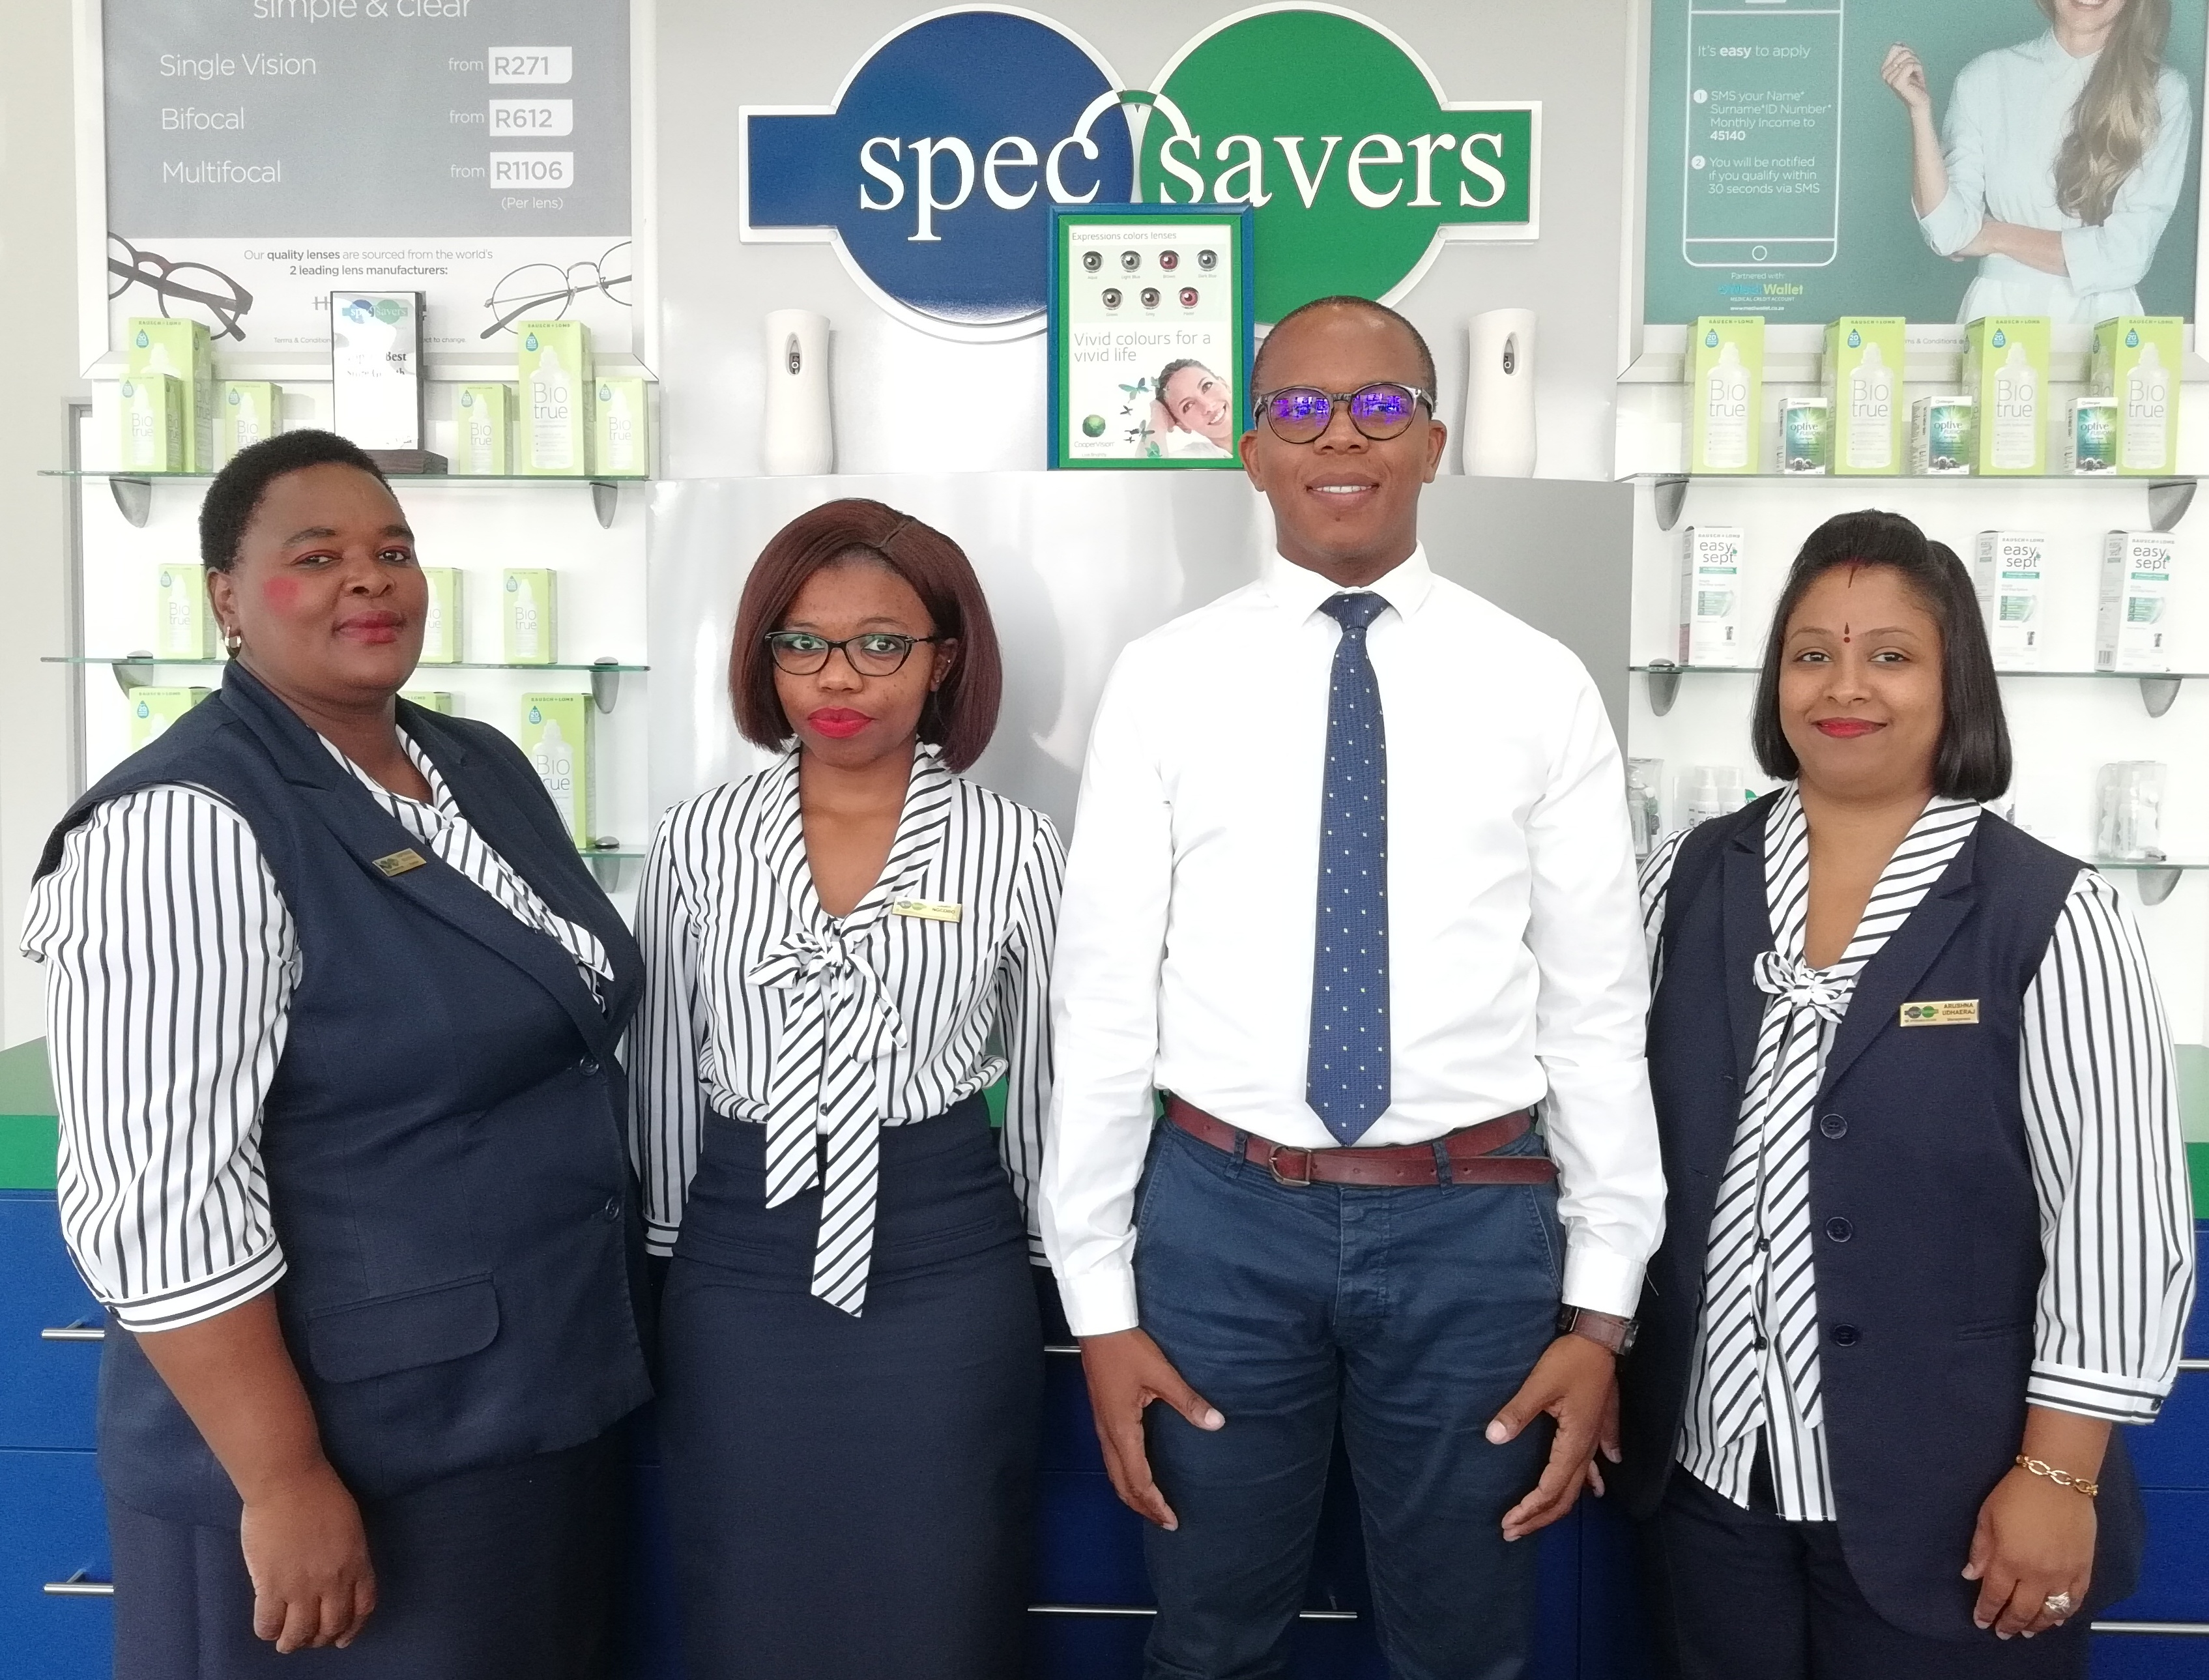 Meet our Spec-Savers Maritzburg Arch Team: From Left to Right - Frontliner - Happiness Mshengu, Frontliner - Zama Ngcobo, Optometrist - Simamkele Mfingwana and Manageress - Arushna Udhaeraj